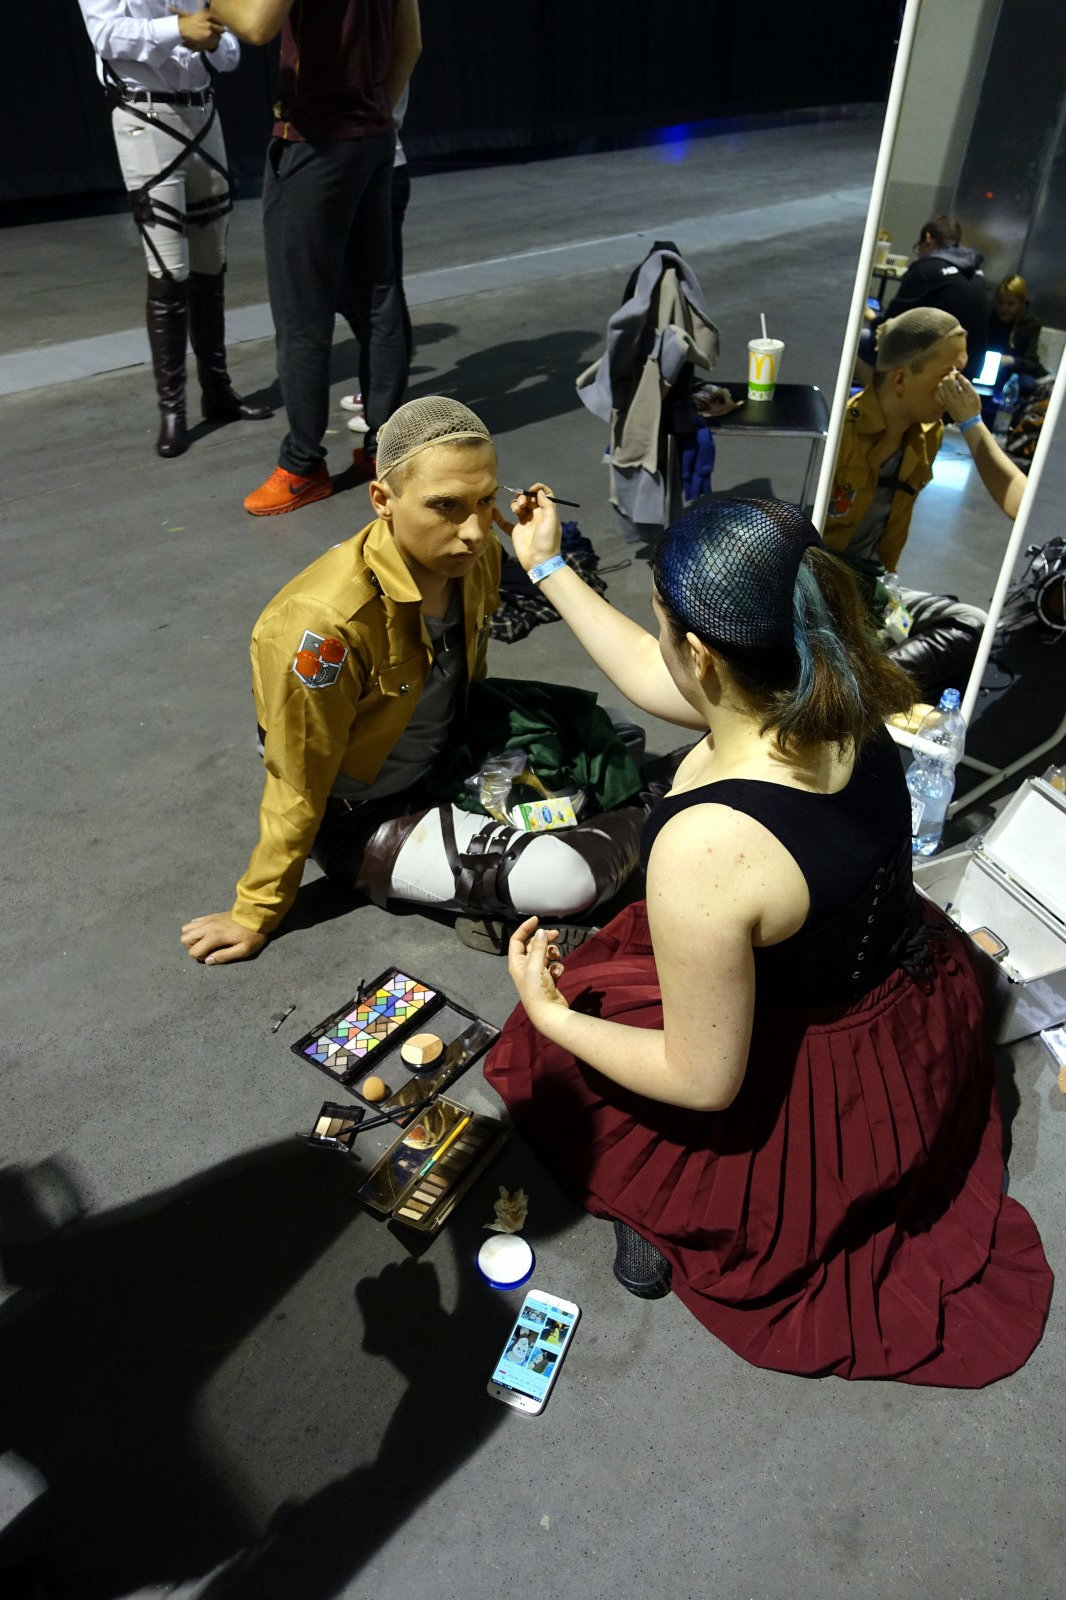 Two people sitting on the floor. One is helping the other with make up.